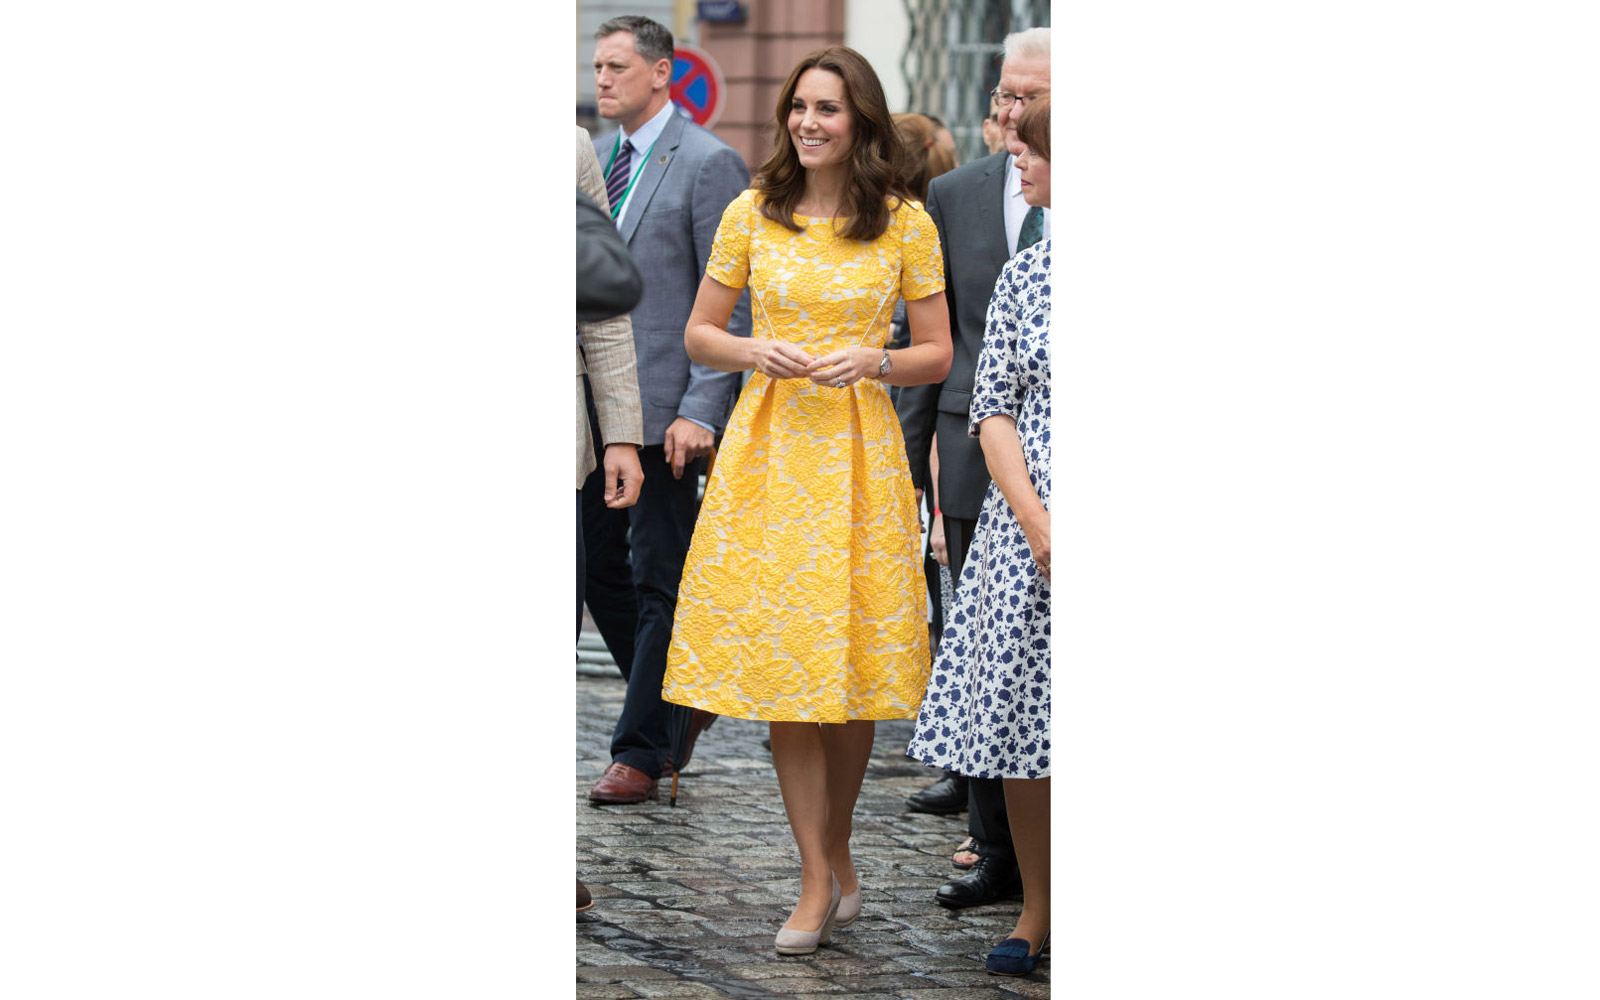 HEIDELBERG, GERMANY - JULY 20:  (NO UK SALES FOR 28 DAYS FROM CREATE DATE) Catherine, Duchess of Cambridge tours  a traditional German market in the Central Square during an official visit to Poland and Germany on July 20, 2017 in Heidelberg, Germany.  (P